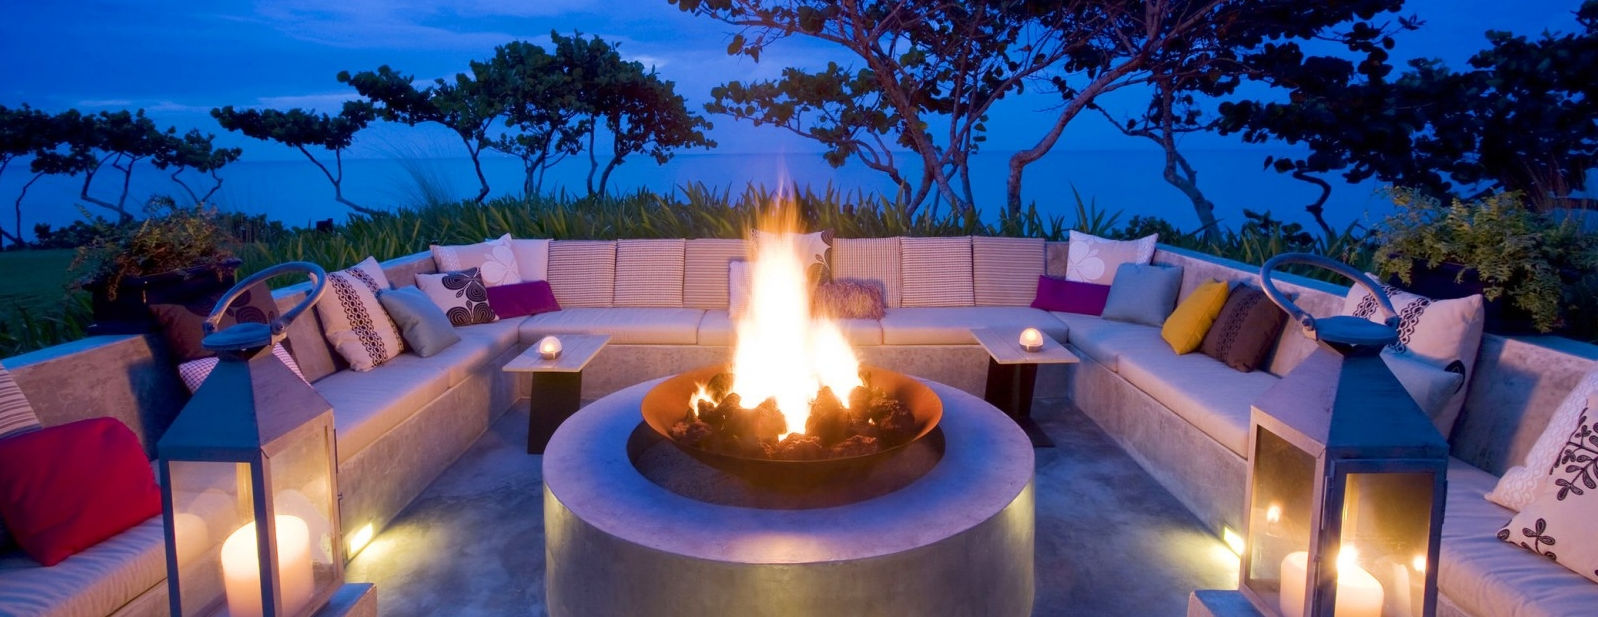 W Retreat & Spa, Vieques Island - Fire Pit